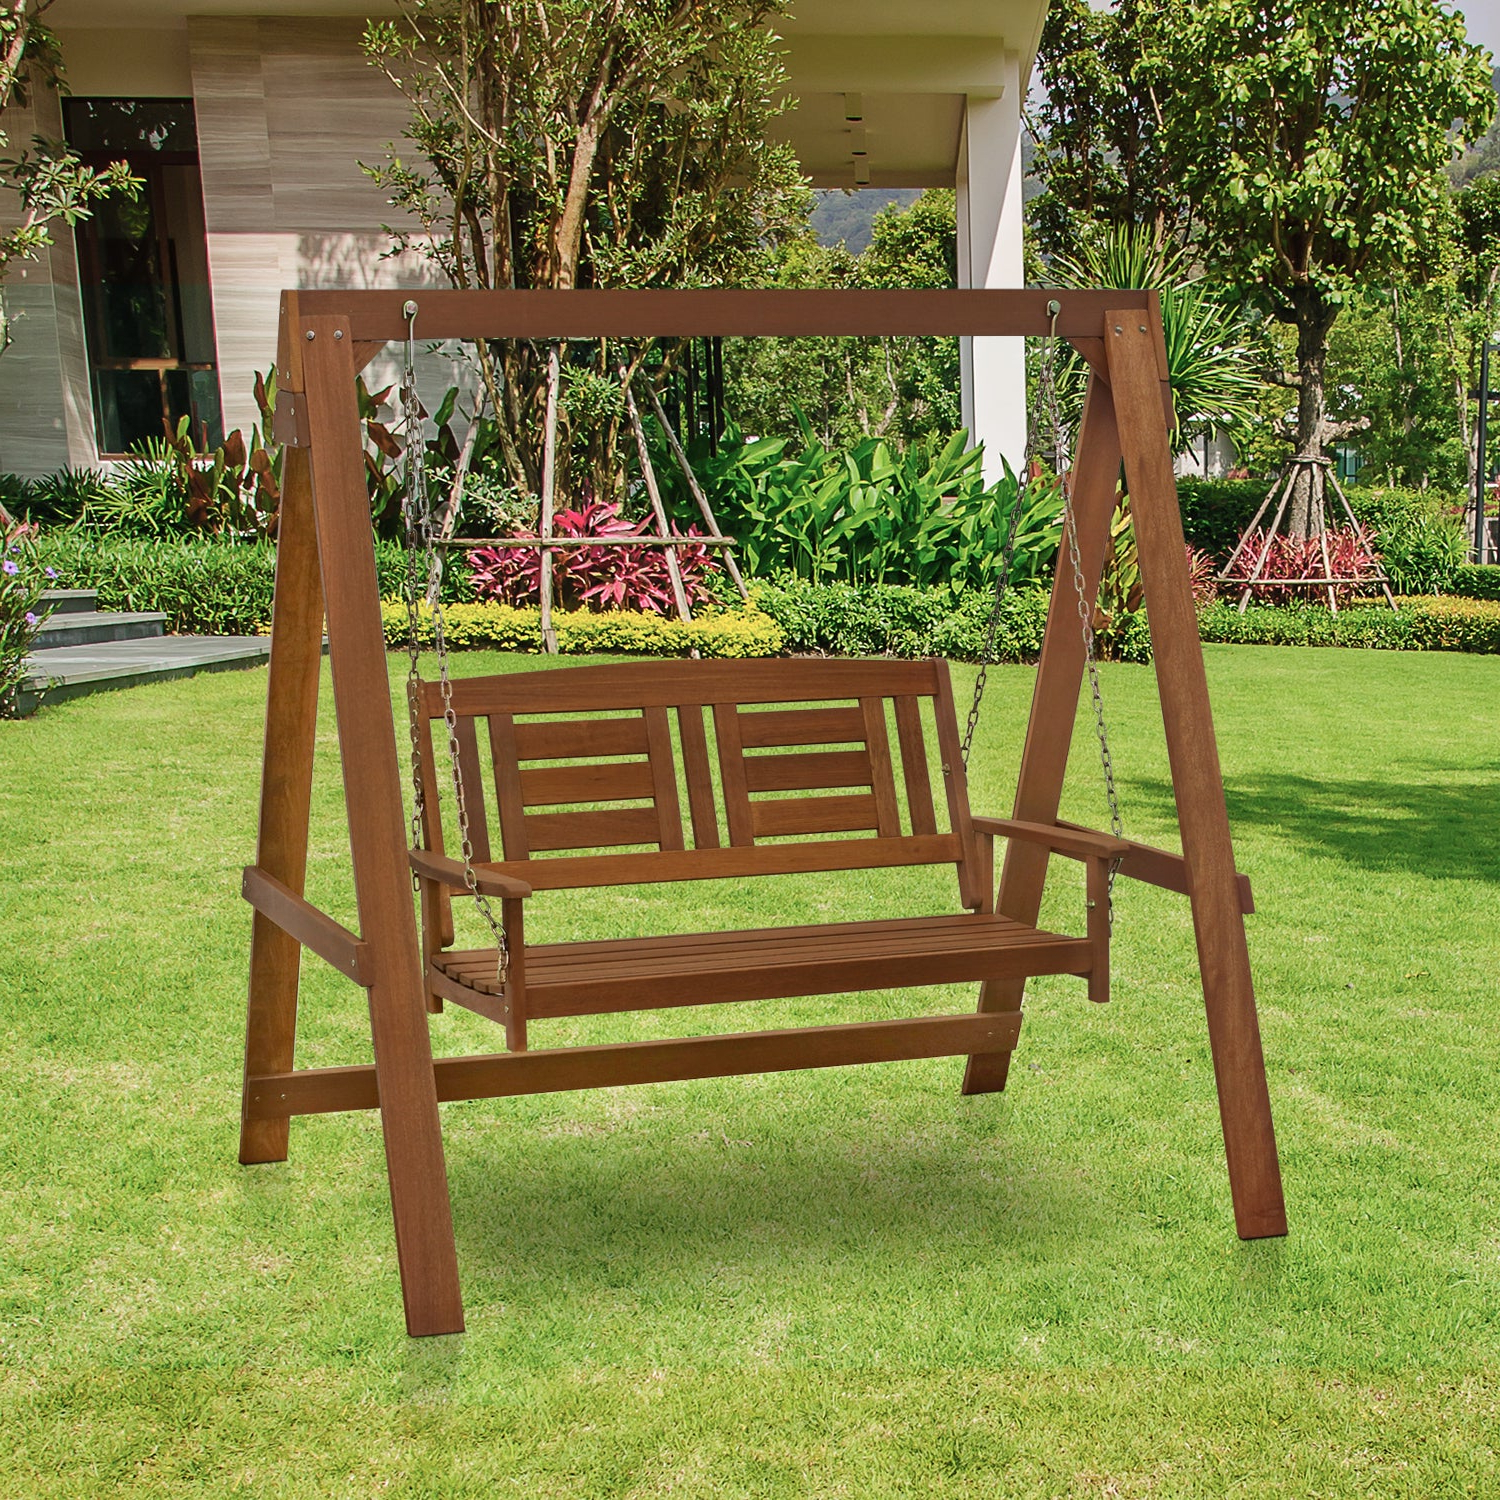 Widely Used Furinno Tioman Hardwood Hanging Porch Swing With Stand In Teak Oil, Fg16409 With Hardwood Hanging Porch Swings With Stand (View 4 of 25)